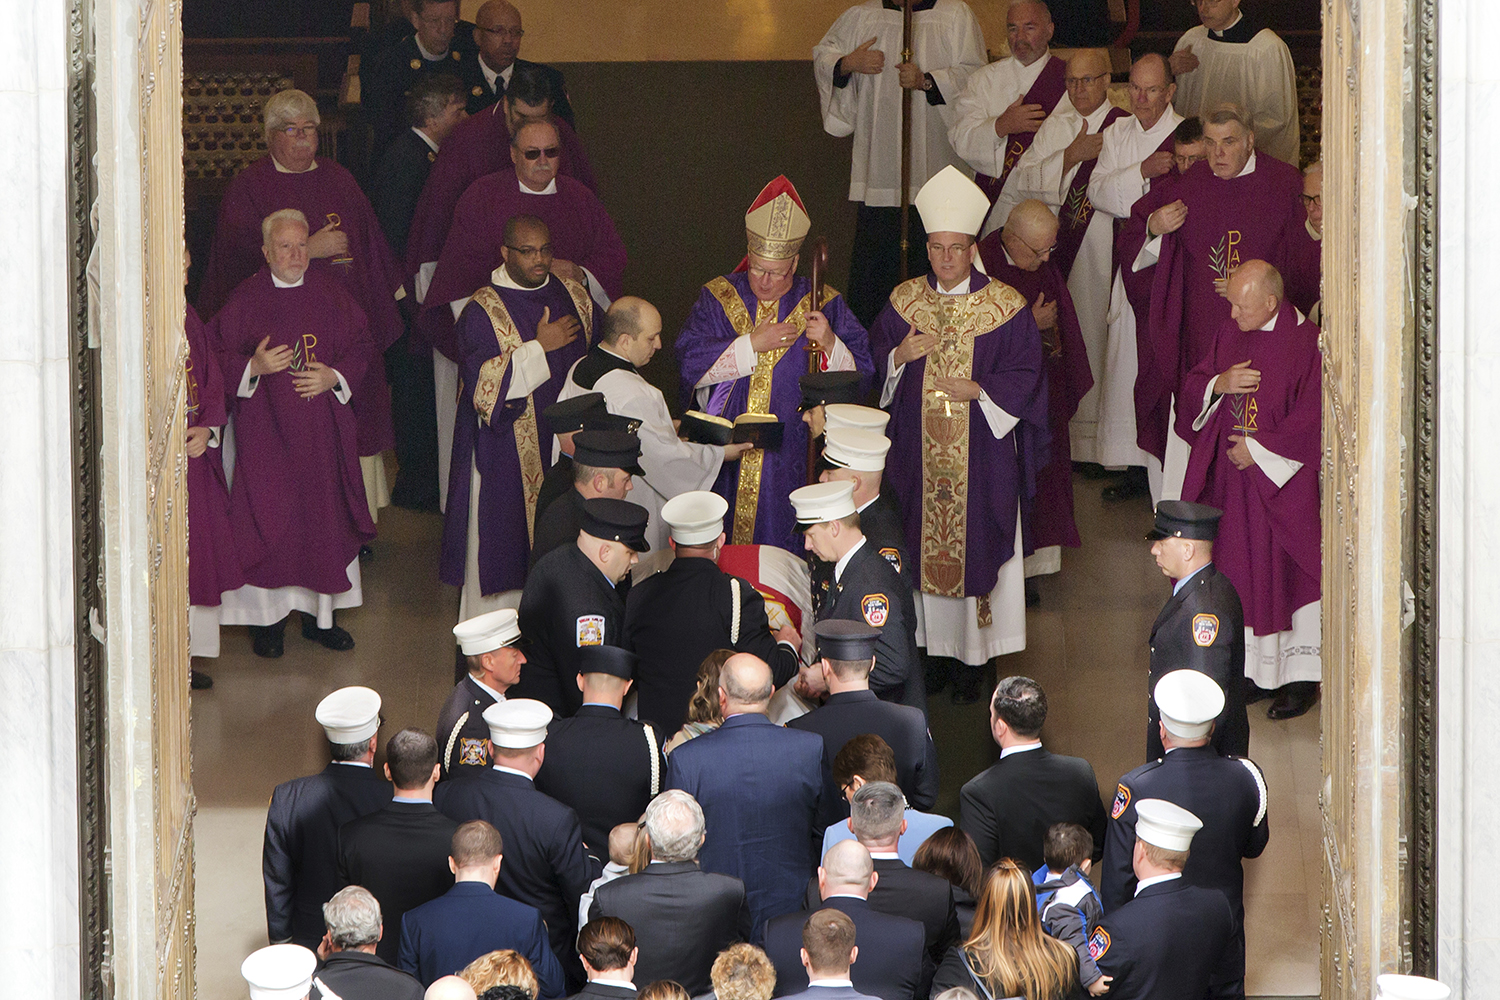 <div class='meta'><div class='origin-logo' data-origin='AP'></div><span class='caption-text' data-credit='Richard Drew'>Archbishop Timothy Dolan, center, presides over the casket of New York City firefighter Michael Davidson as it enters St. Patrick's Cathedral.</span></div>